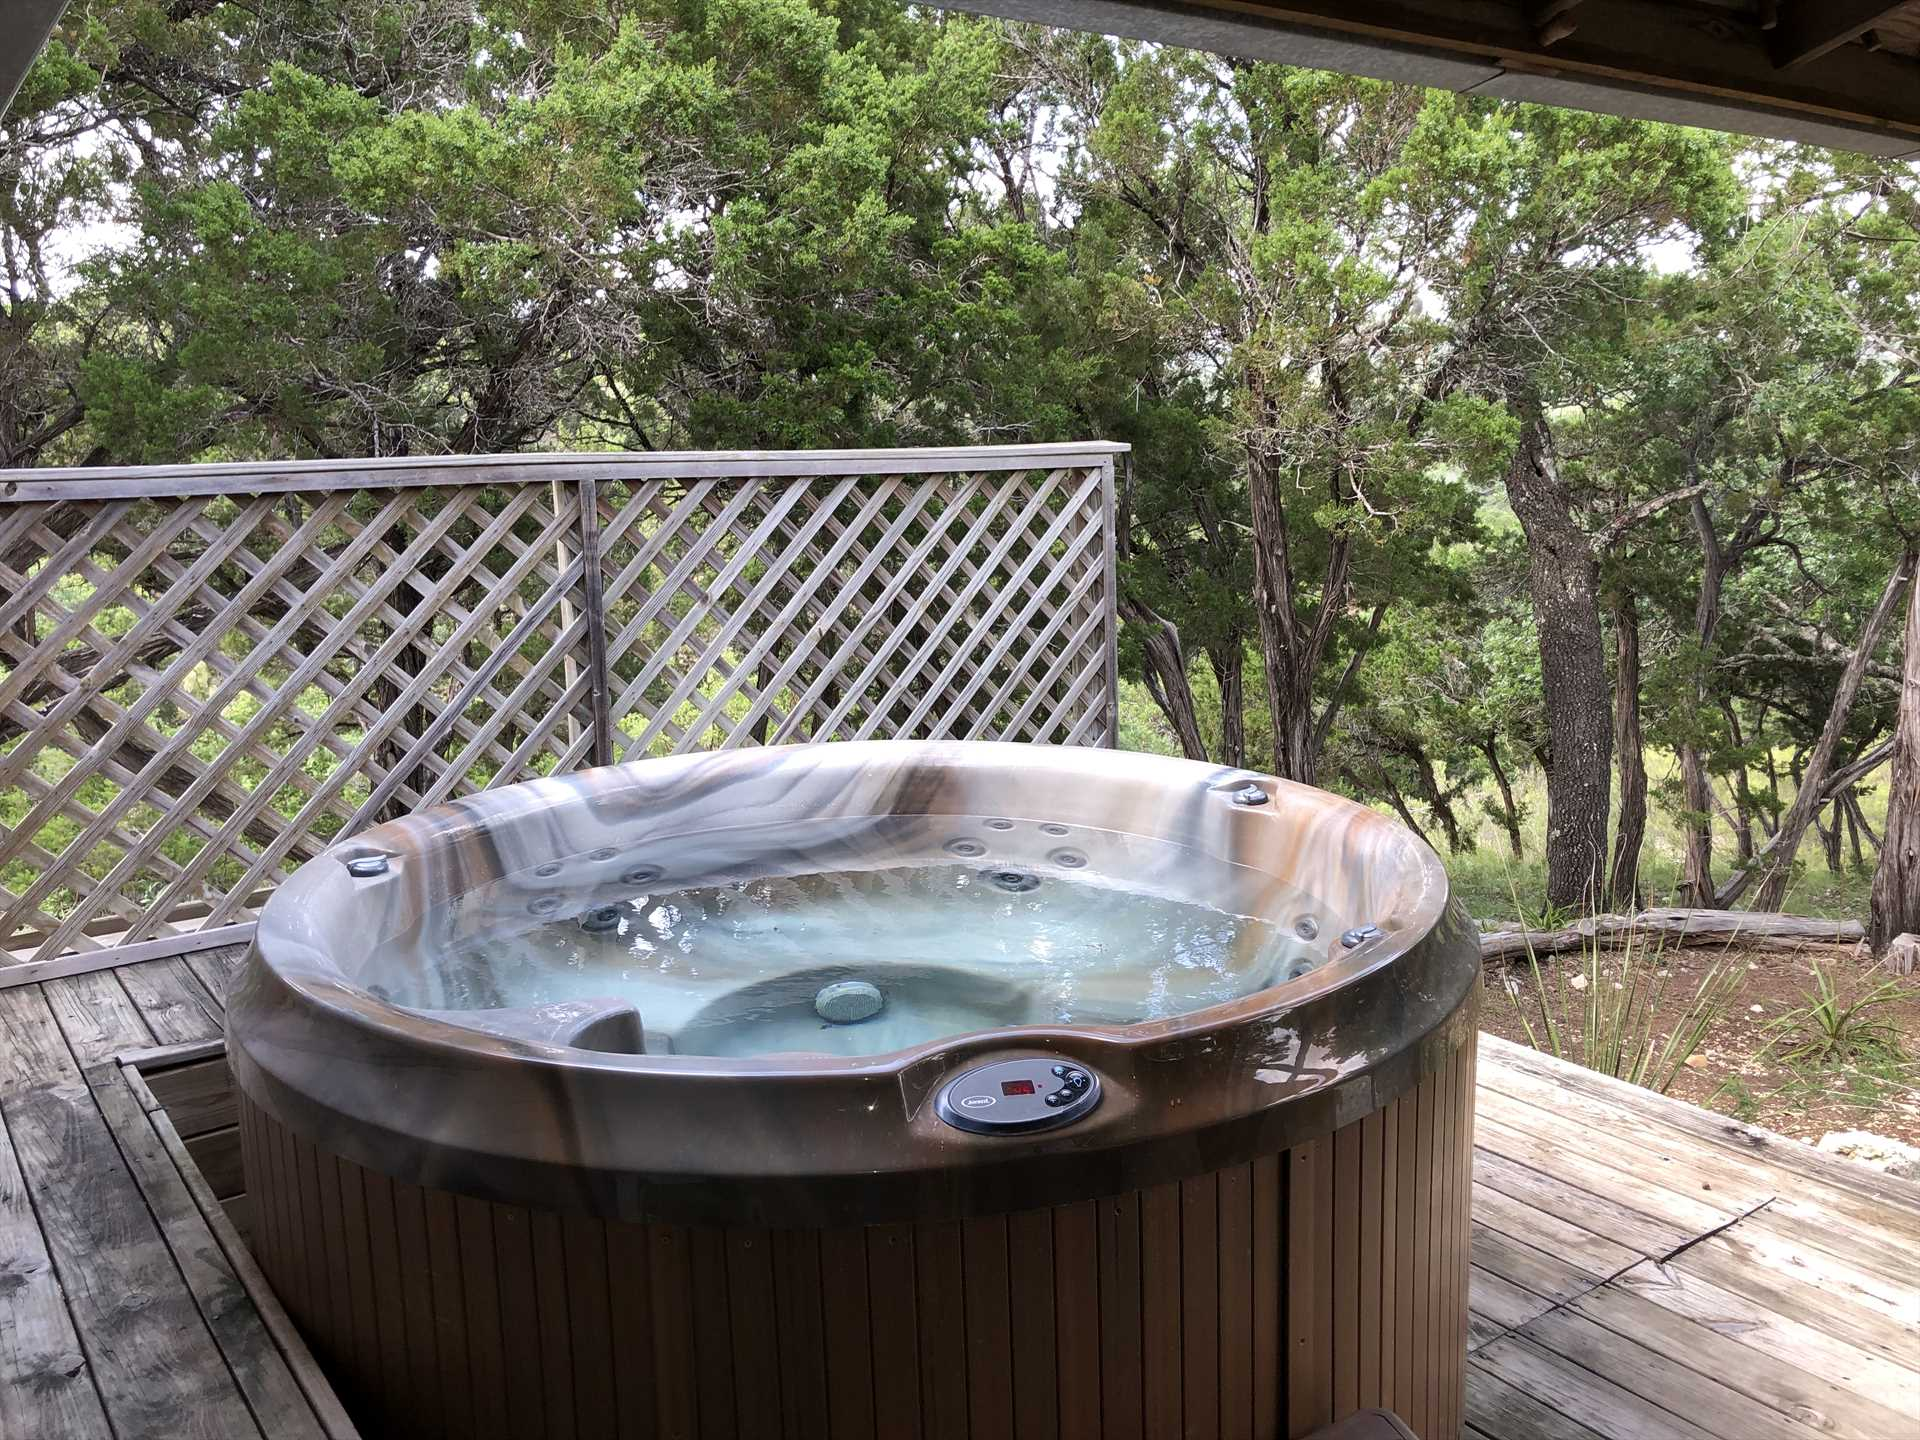 Don't forget your private hot tub! As our guest Ruth put it,